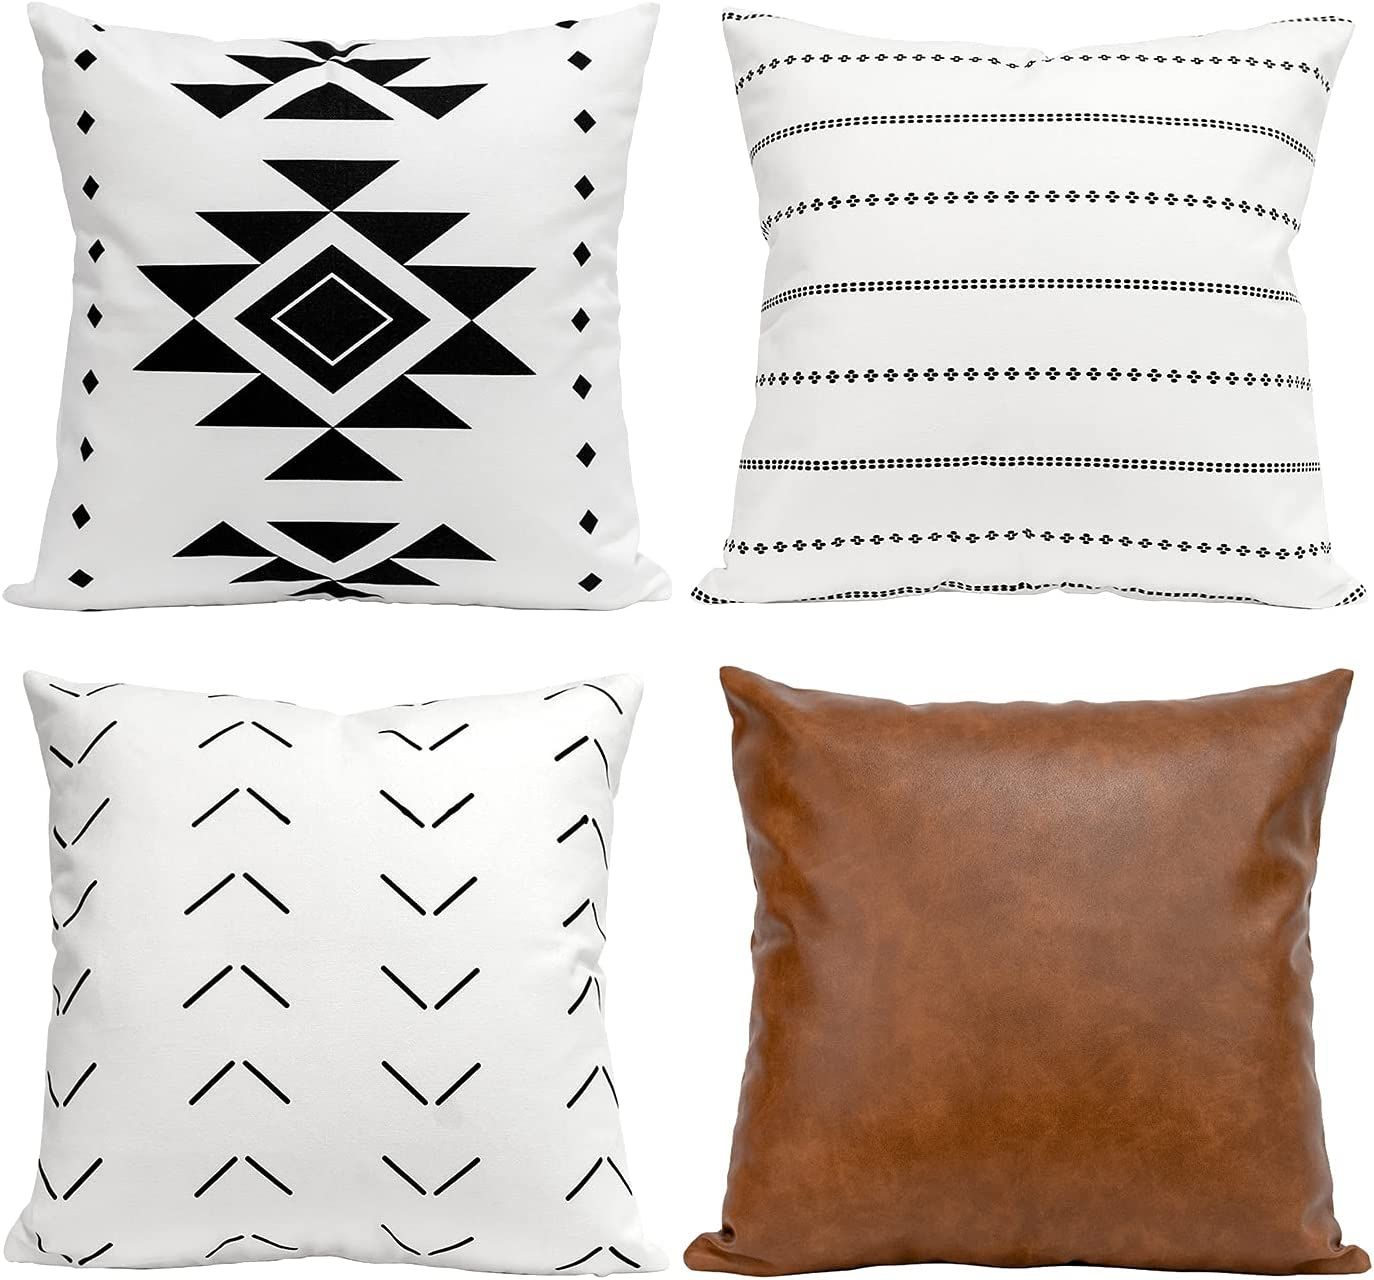 COLORPAPA Boho Throw Pillow Covers for Couch, Decorative Pillow Covers 18x18 Set of 4, Modern Farmhouse Pillow Covers for Sofa, Bed, Living Room, Faux Leather Cushion Cover Black White, and Brown